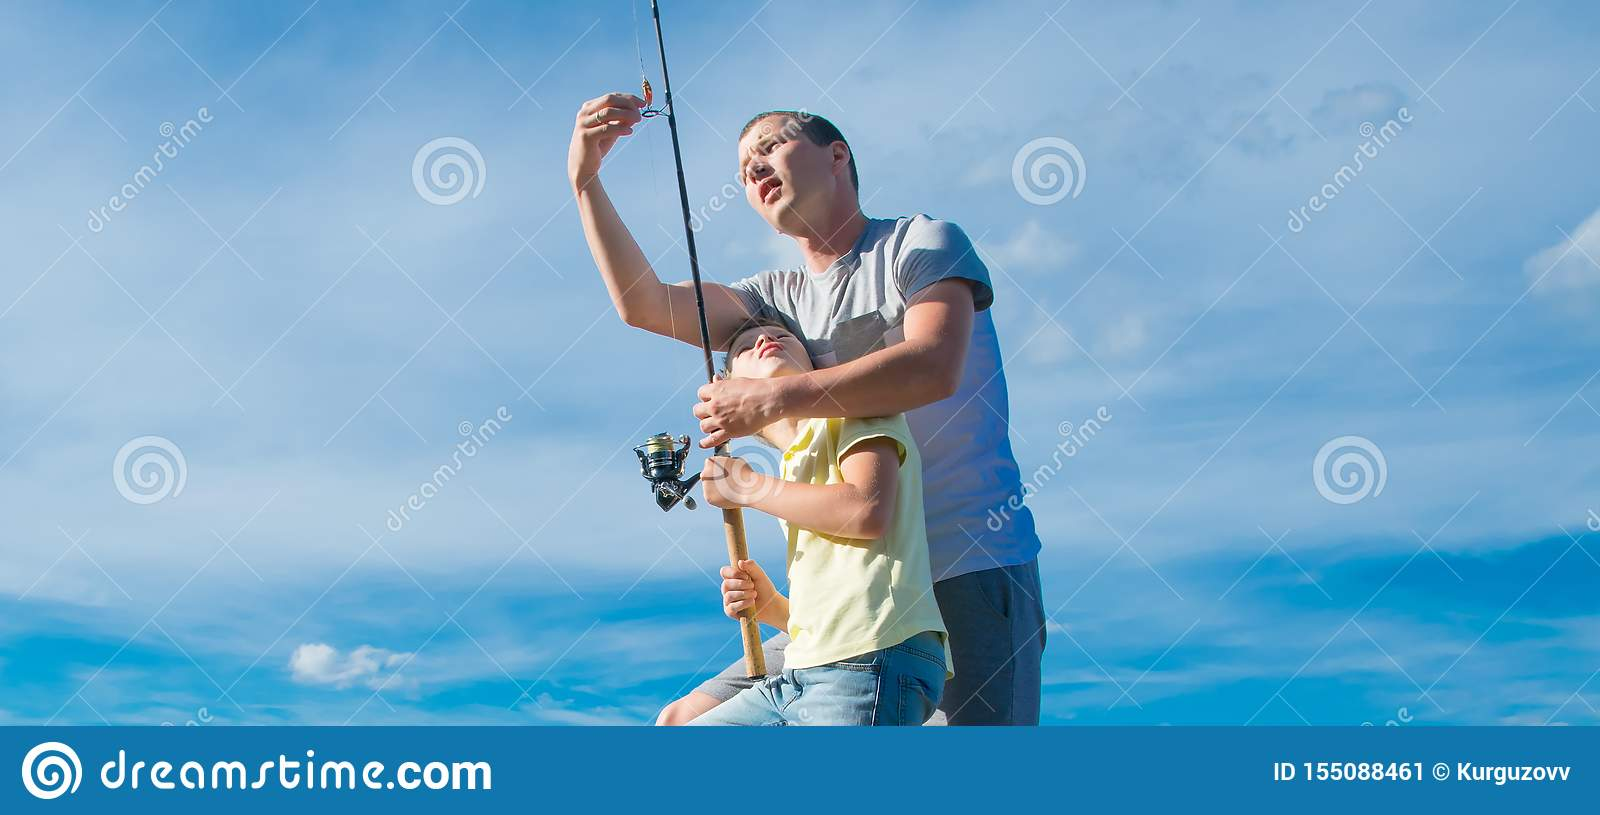 The father shows his son on the pier, how to set up a fishing rod to catch fish, against the blue sky, close-up